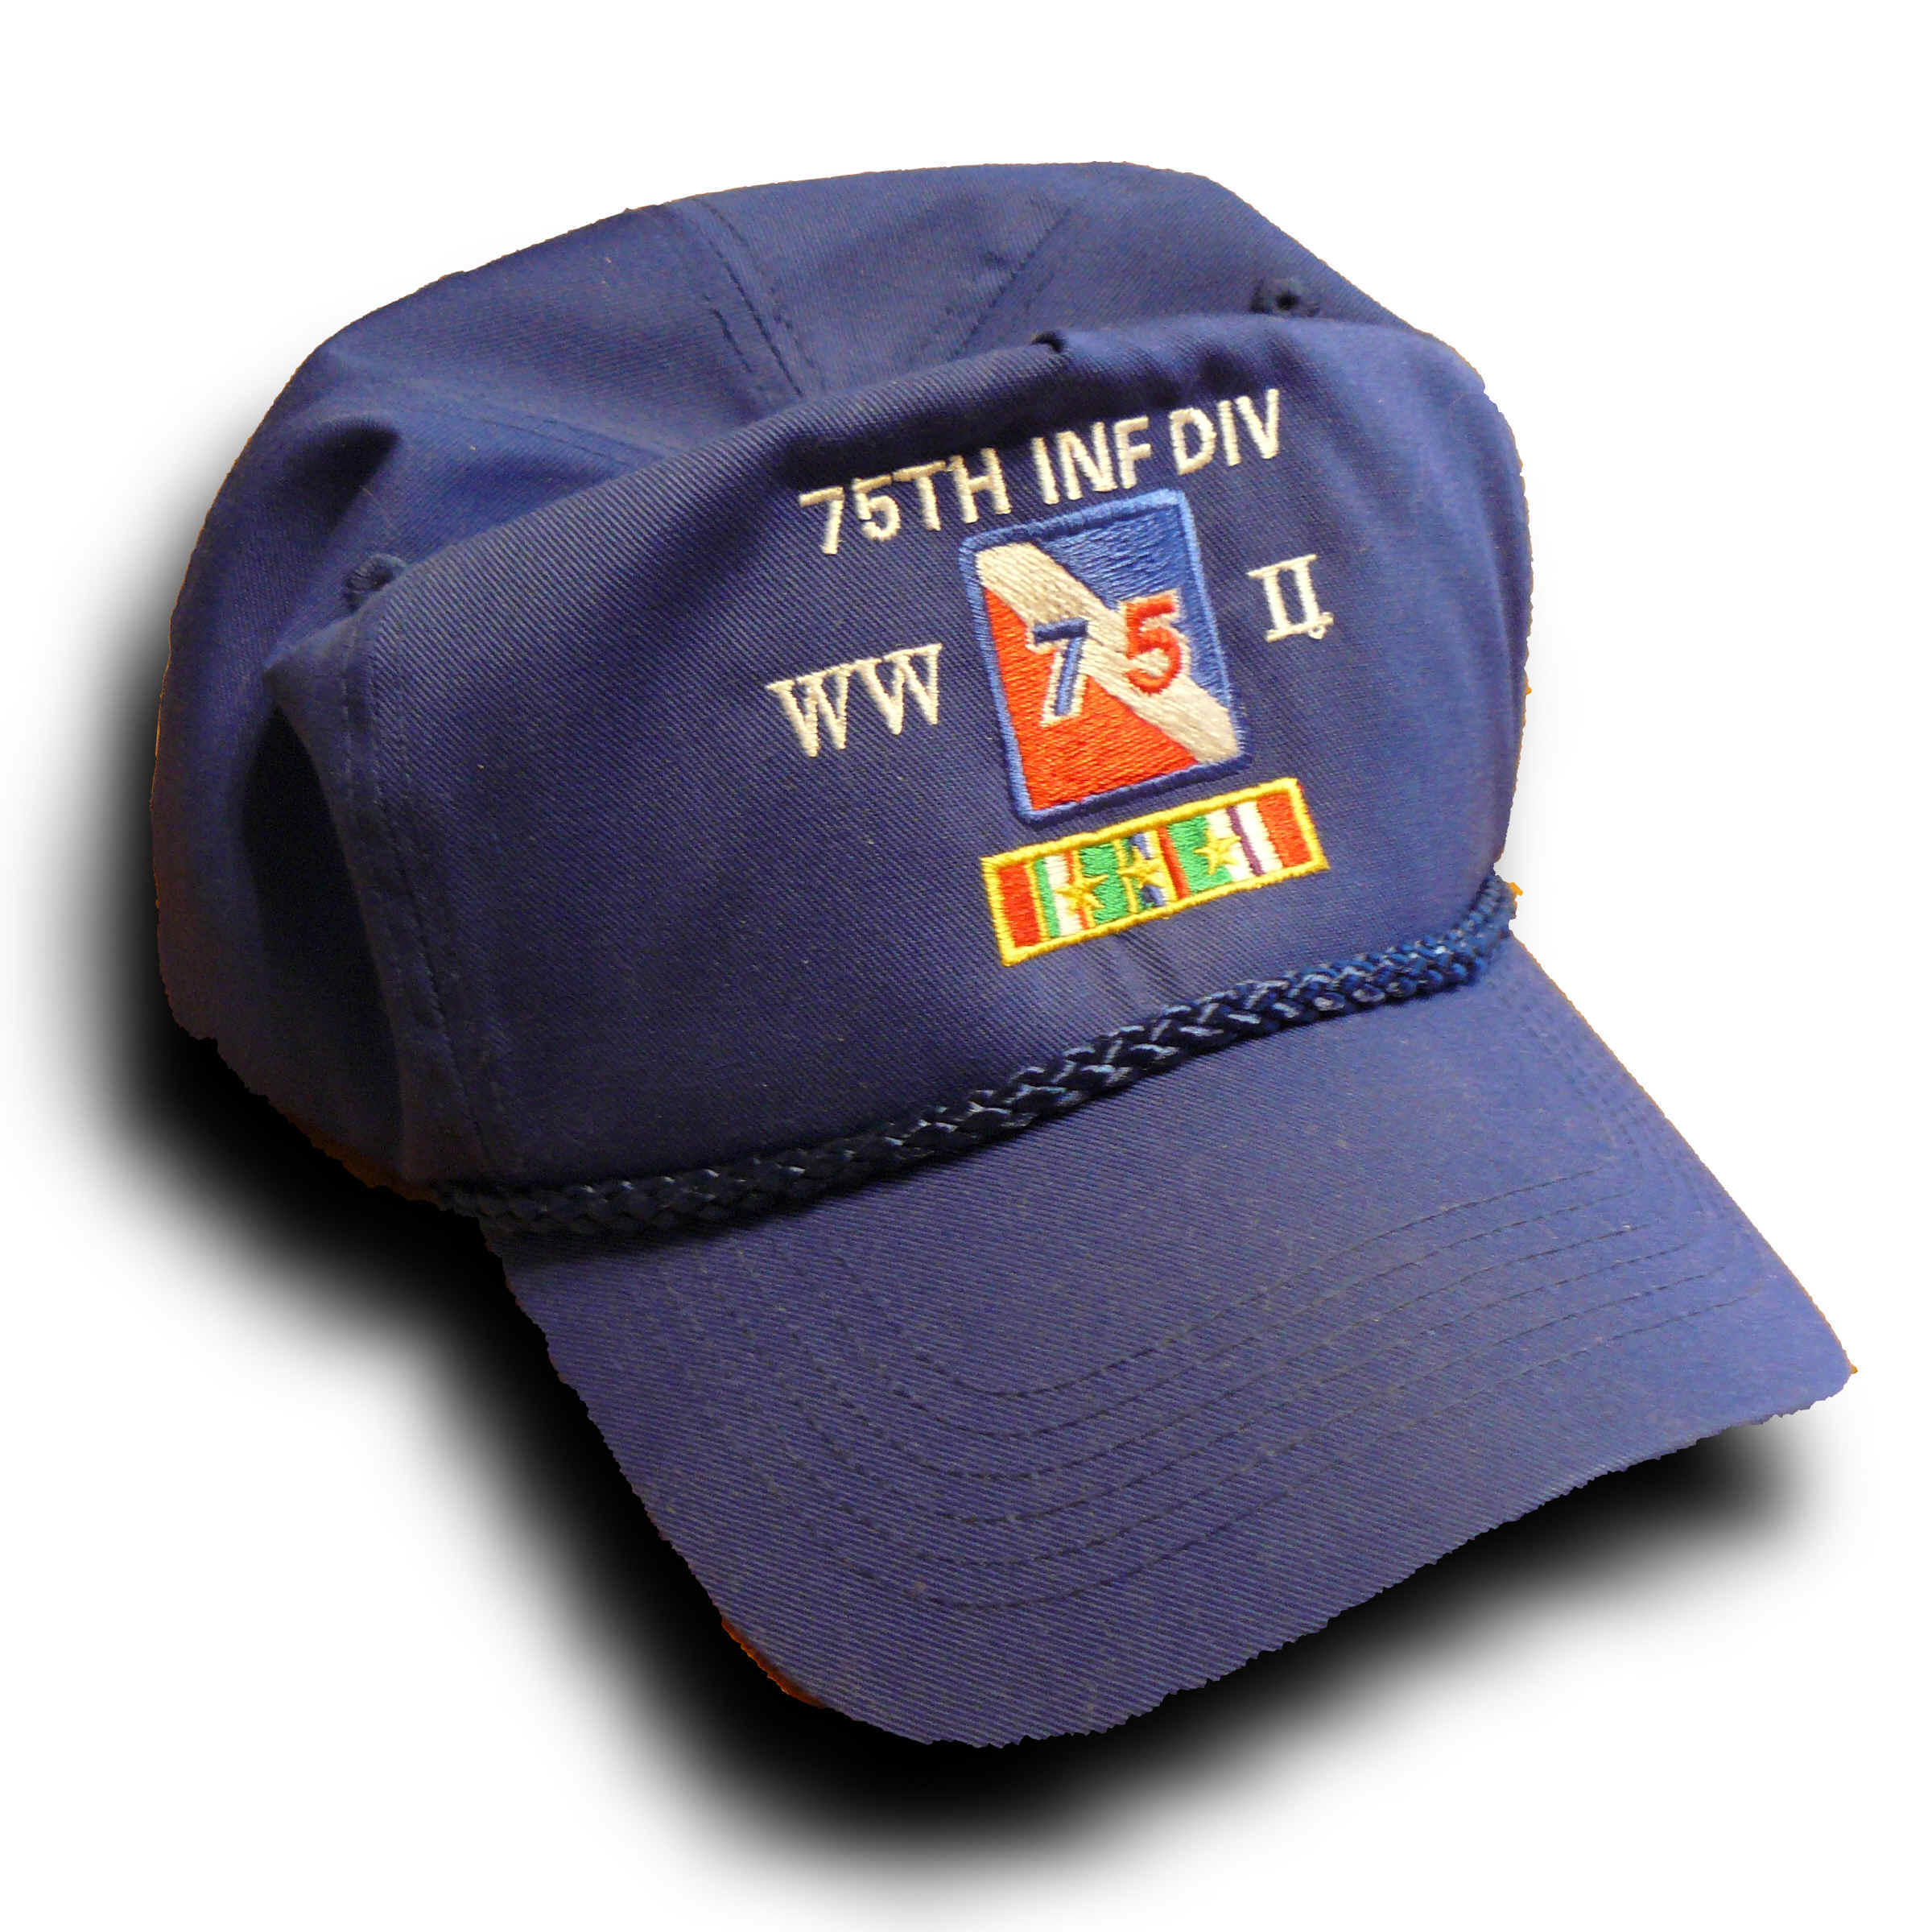 75th Infantry Division WWII - Ball cap